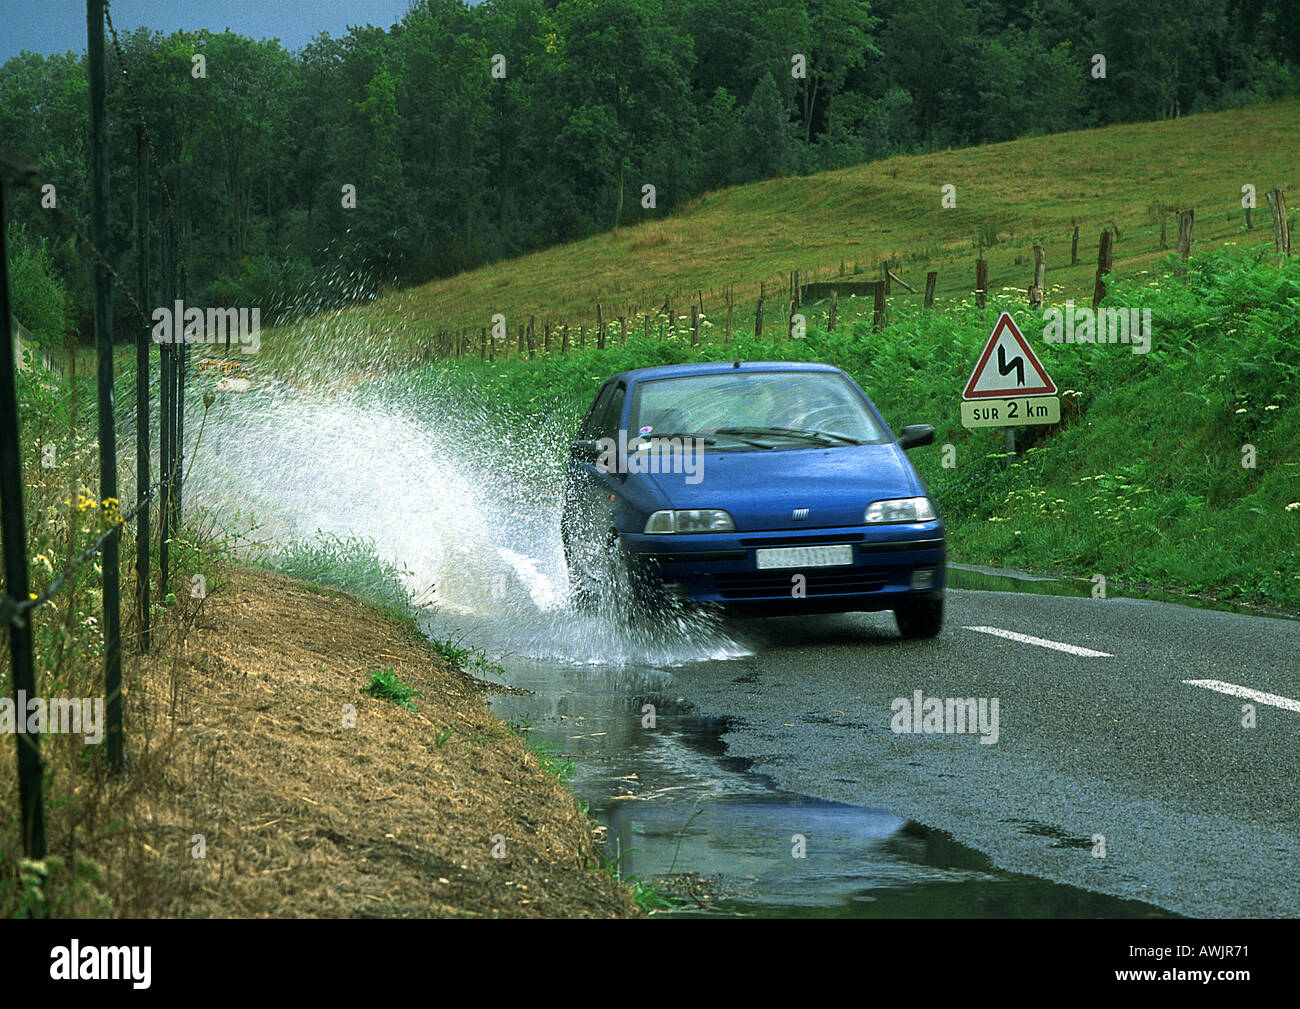 Car driving through puddle, splashing water - Stock Image